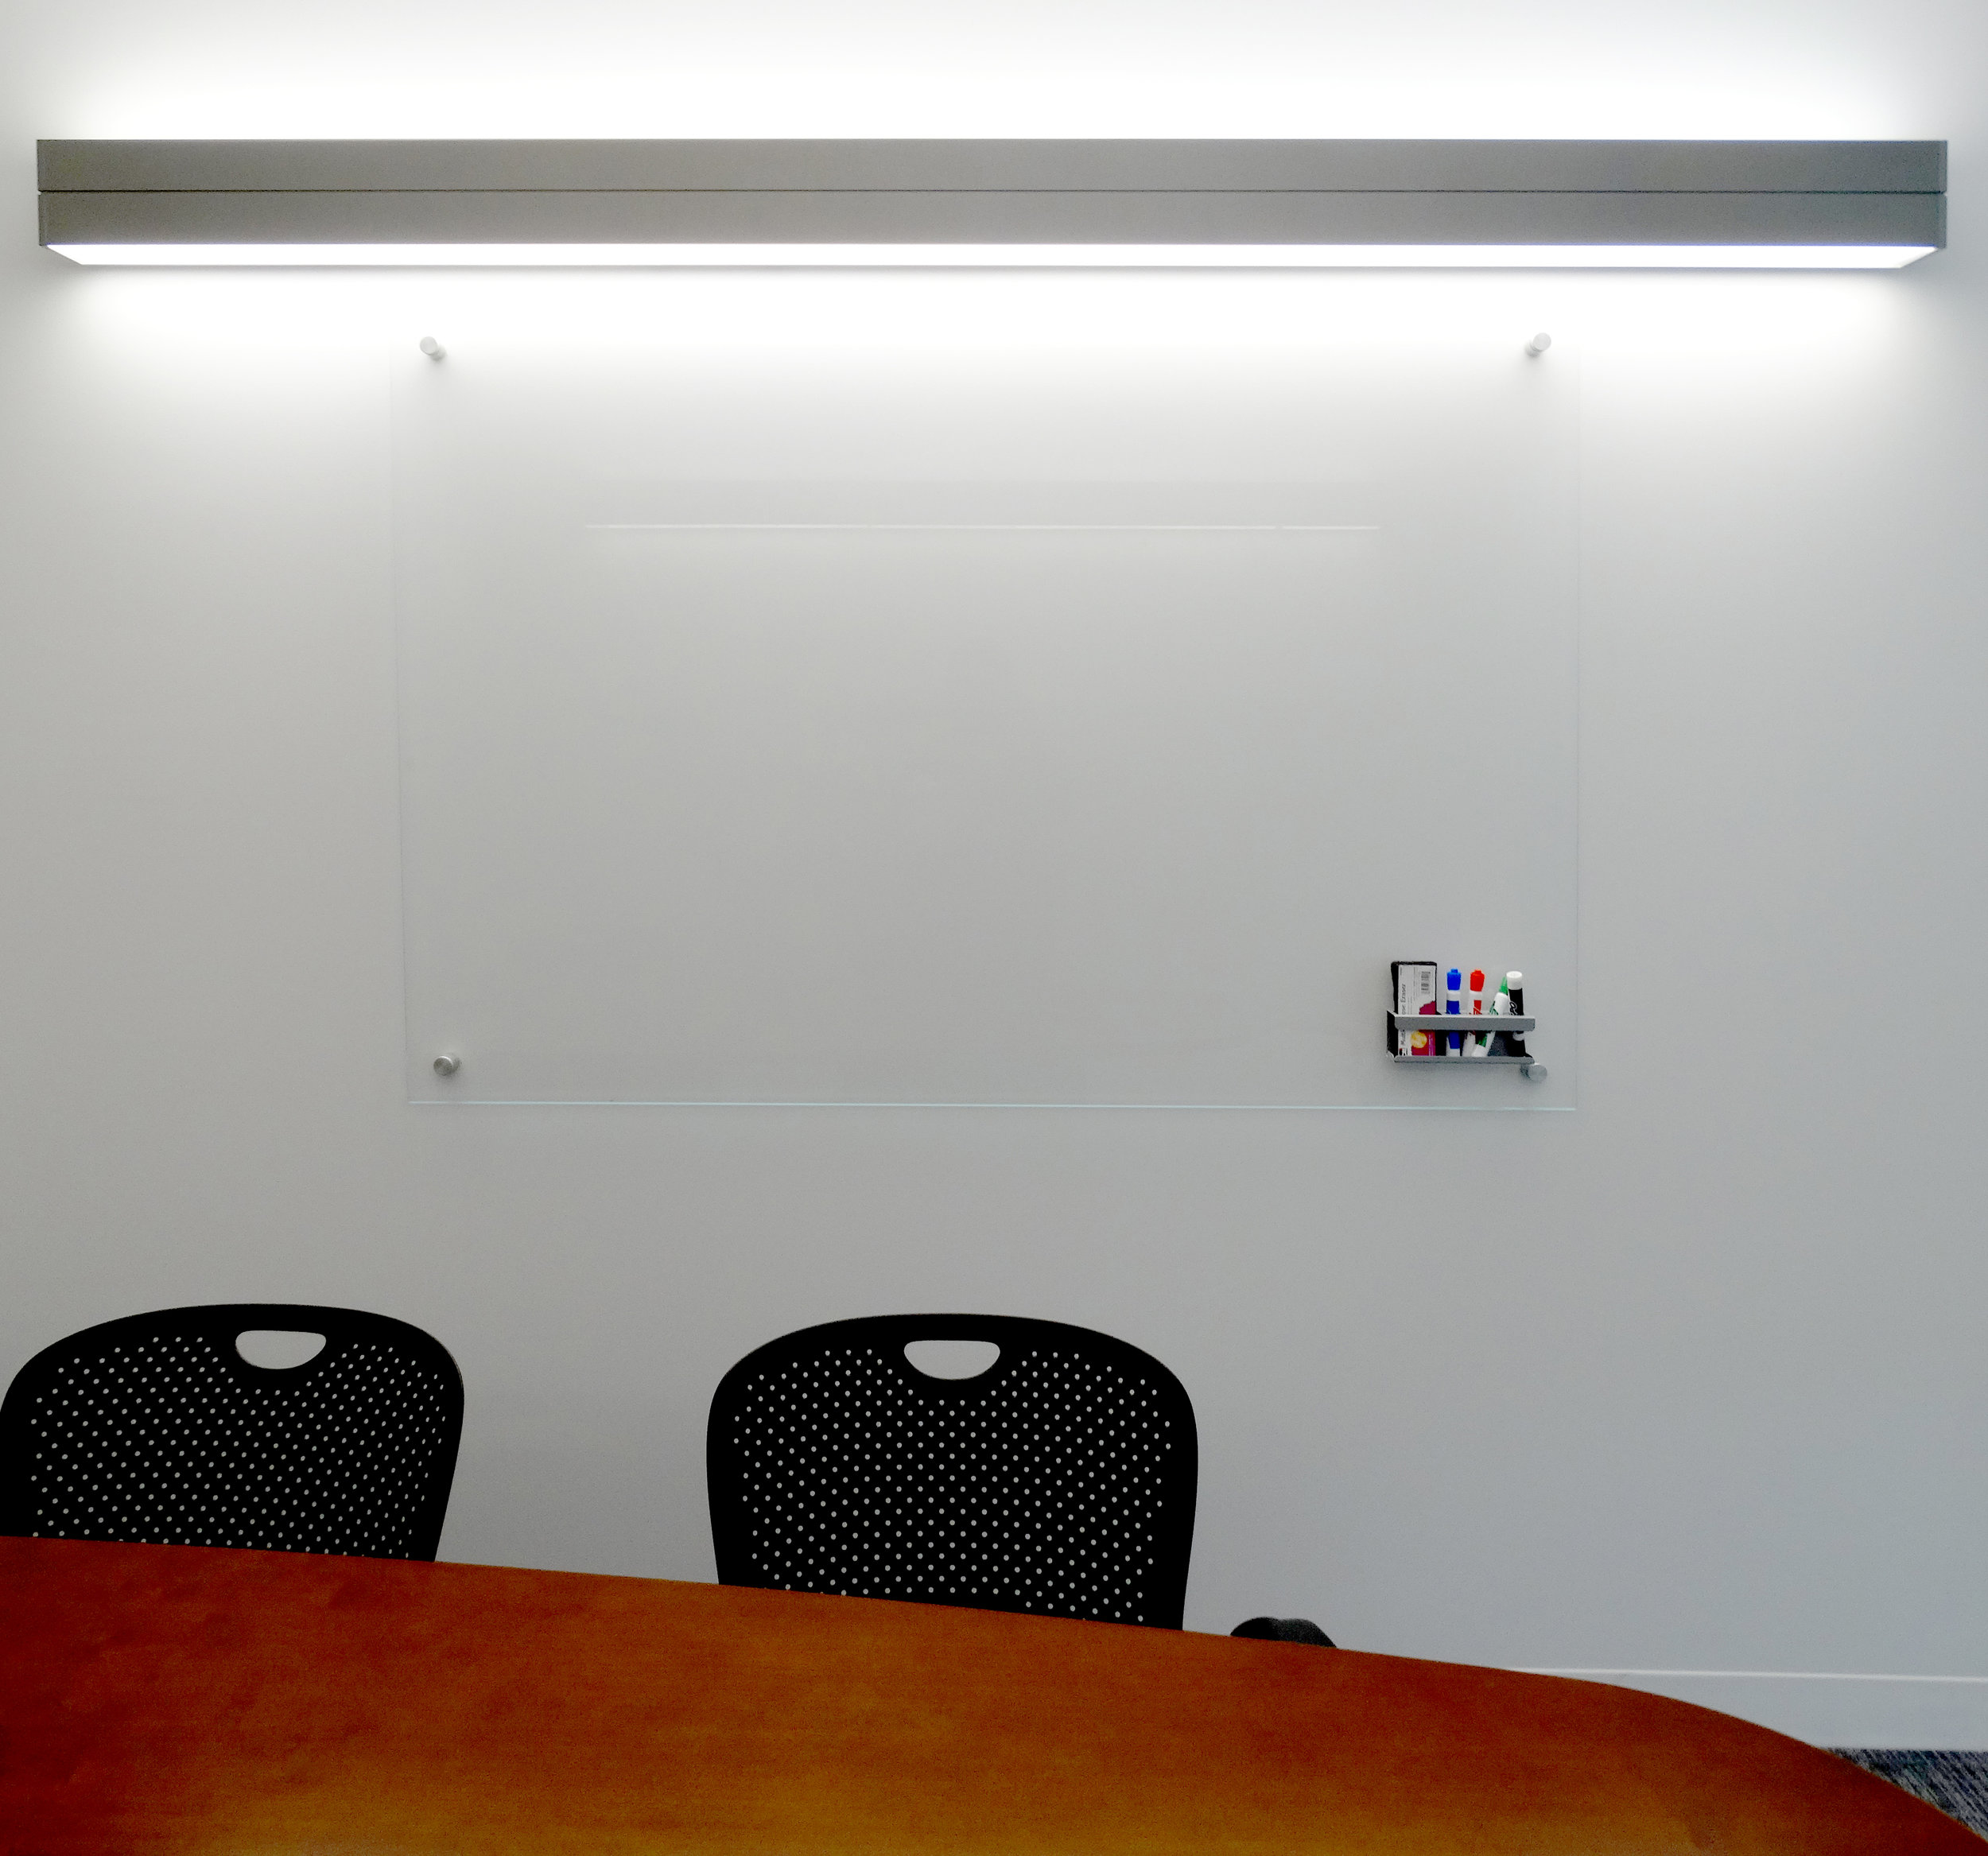 Clear Glass Marker Board Standoffs Office Wall - Spaceworks AI.jpg